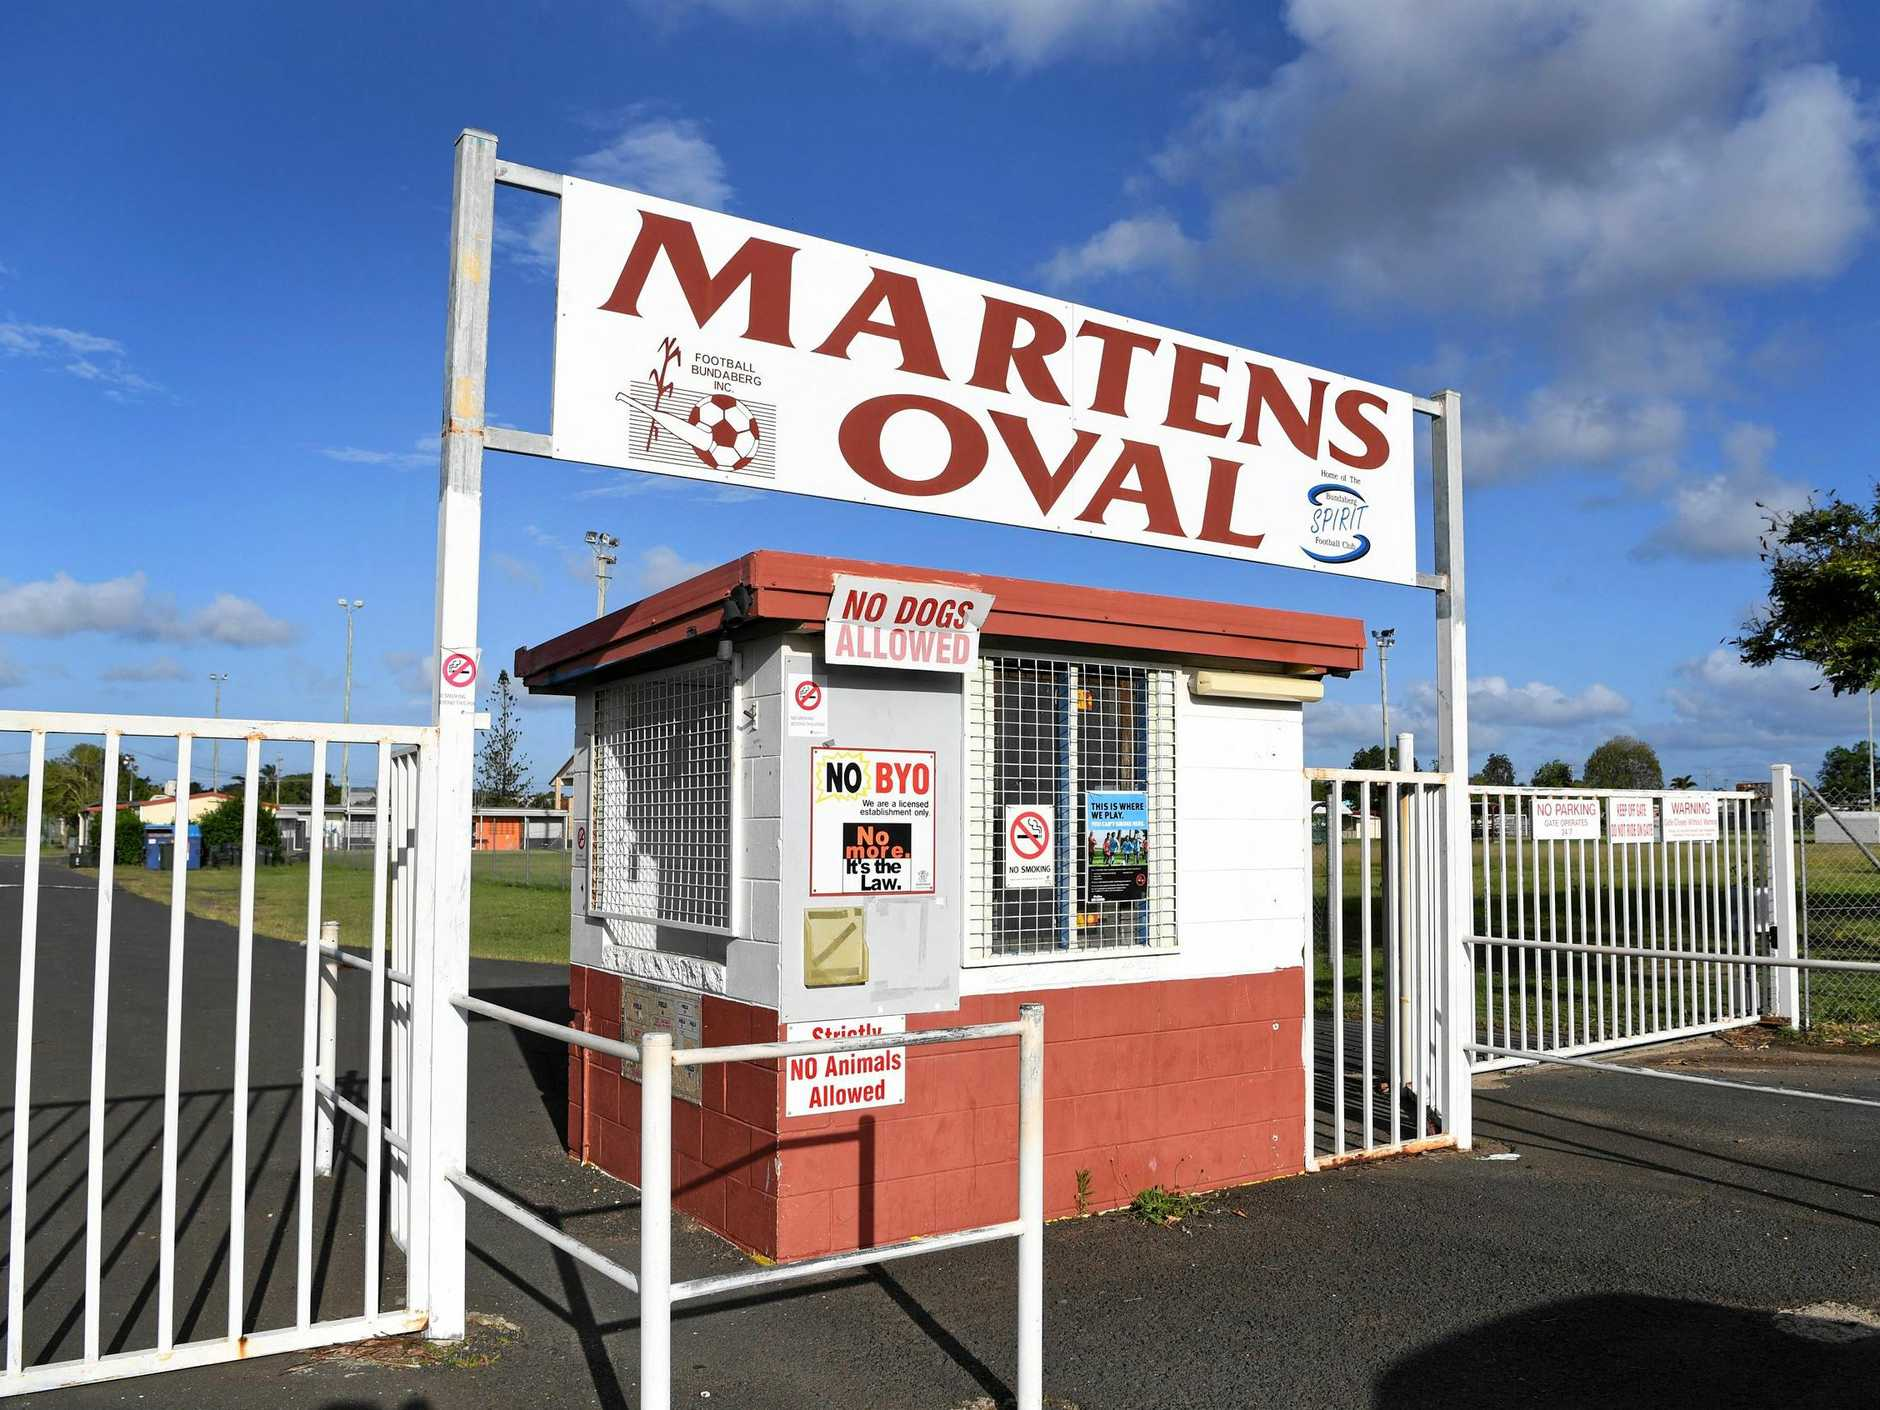 UPGRADE: The state government says it still remains committed to upgrading Martens Oval.